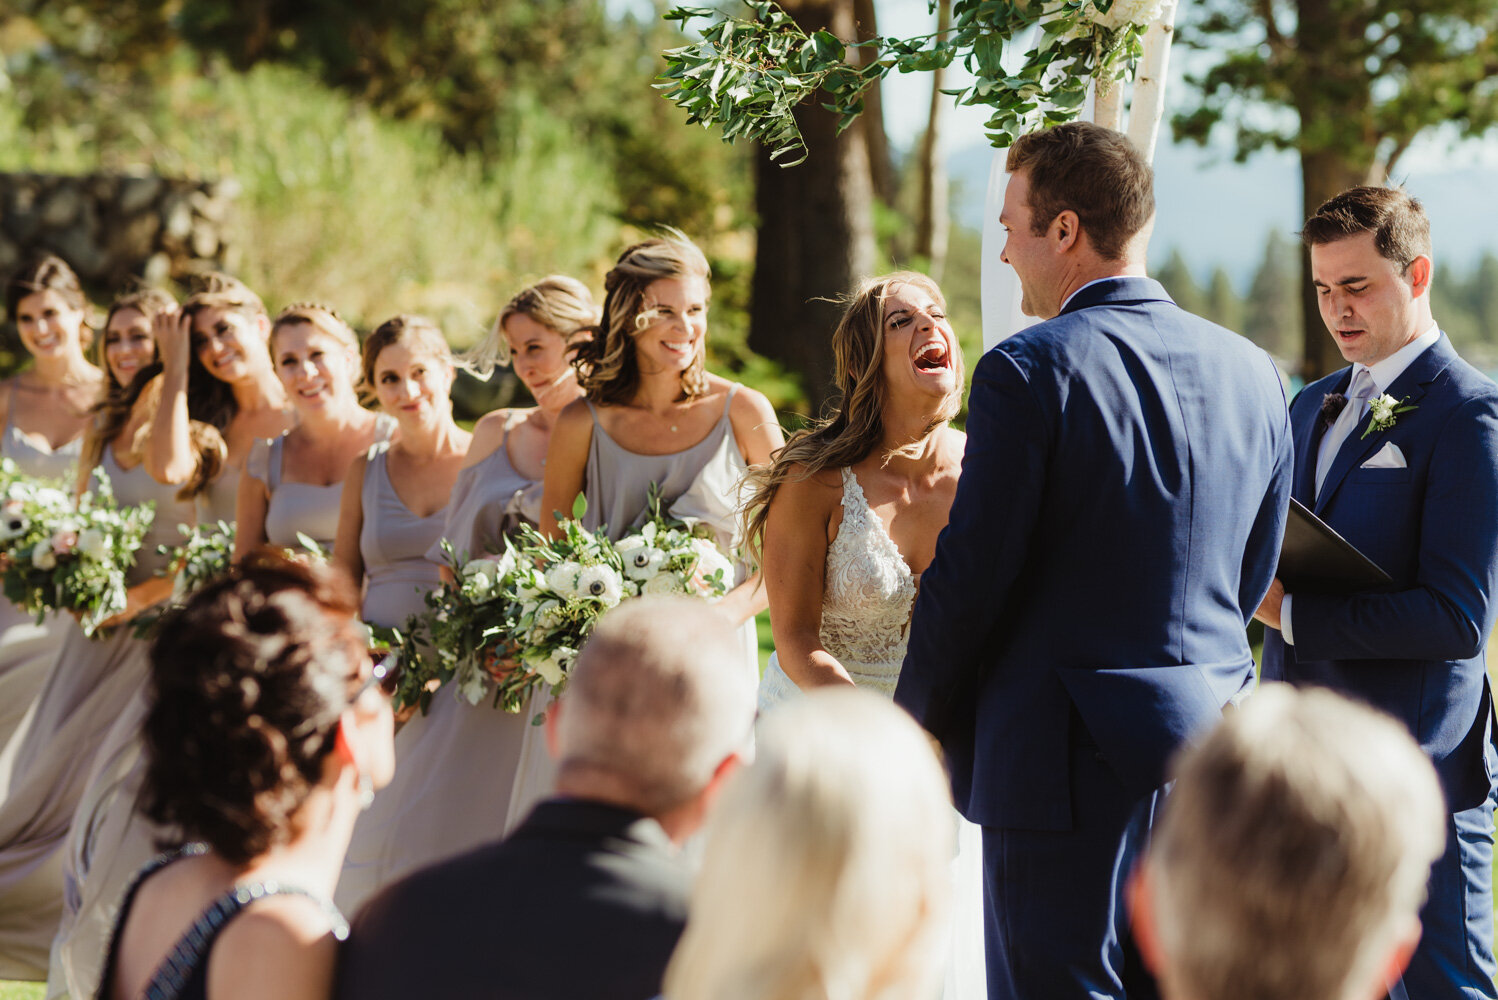 Edgewood Tahoe Wedding, bride laughing during the ceremony photo